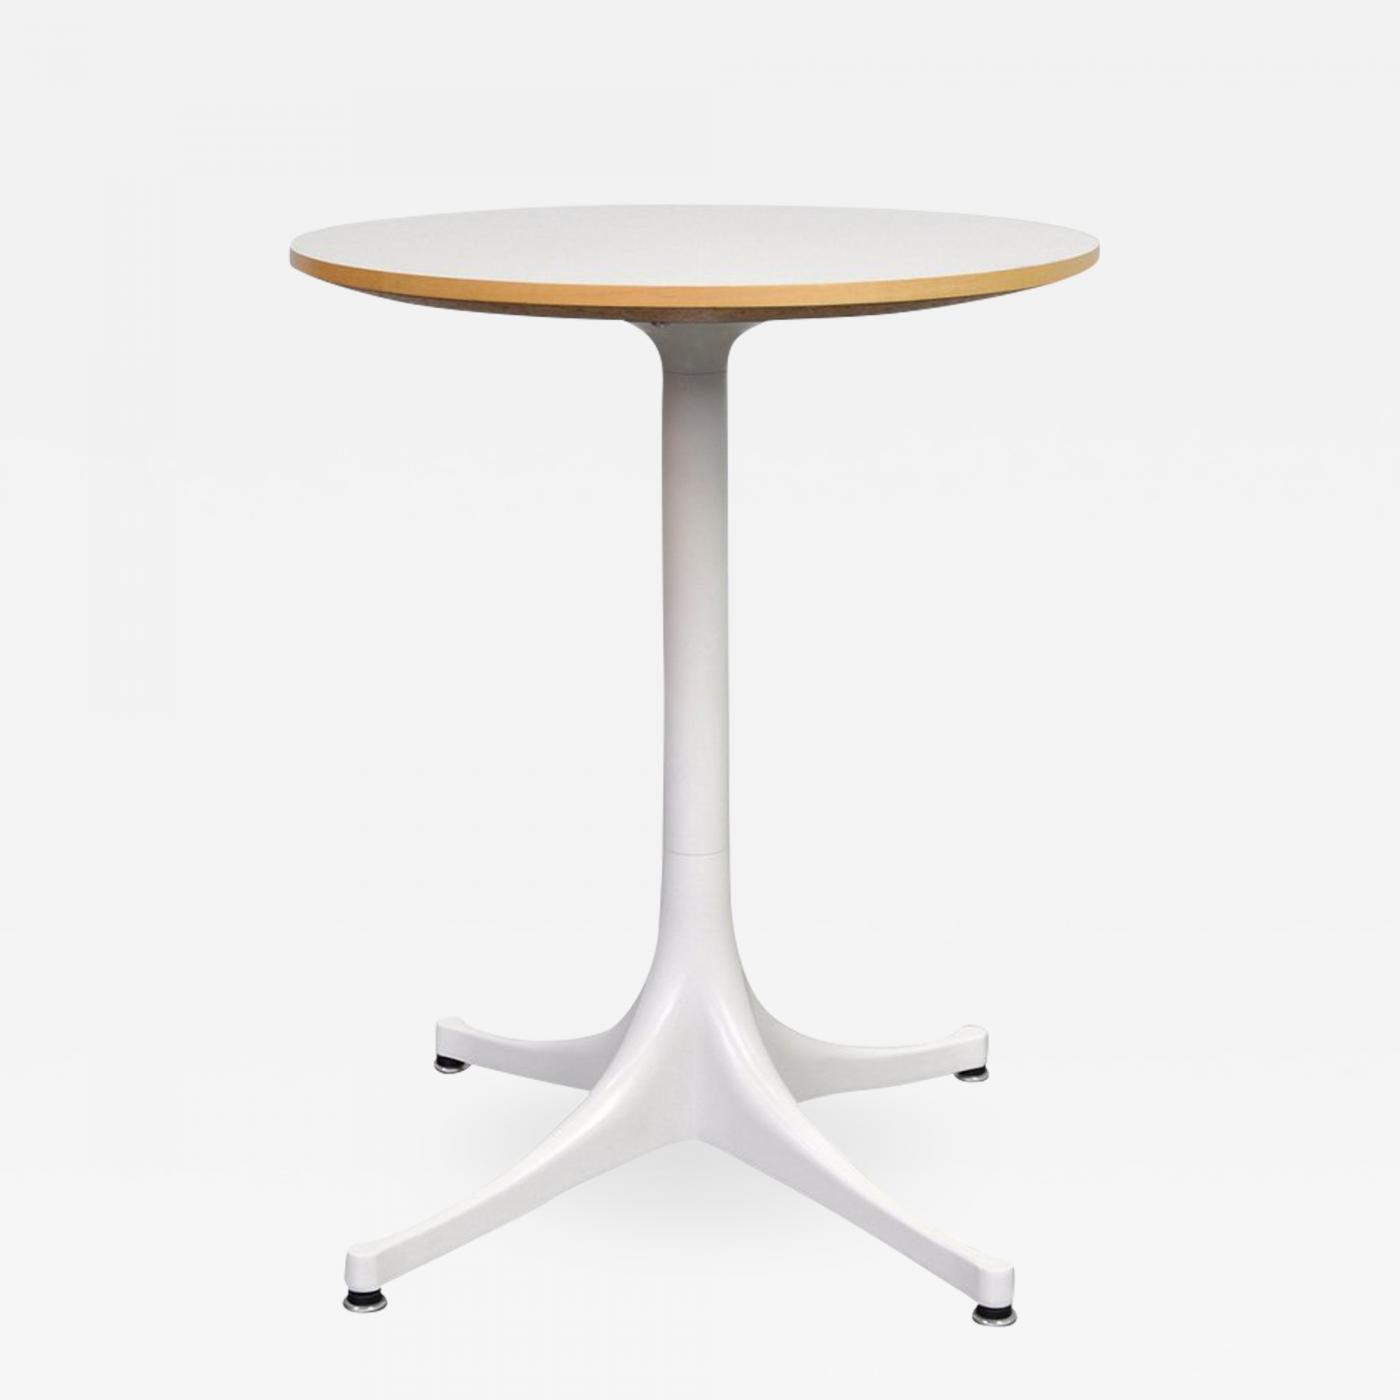 outlet store 8c33a 1af59 George Nelson - George Nelson for Herman Miller Pedestal Side Table